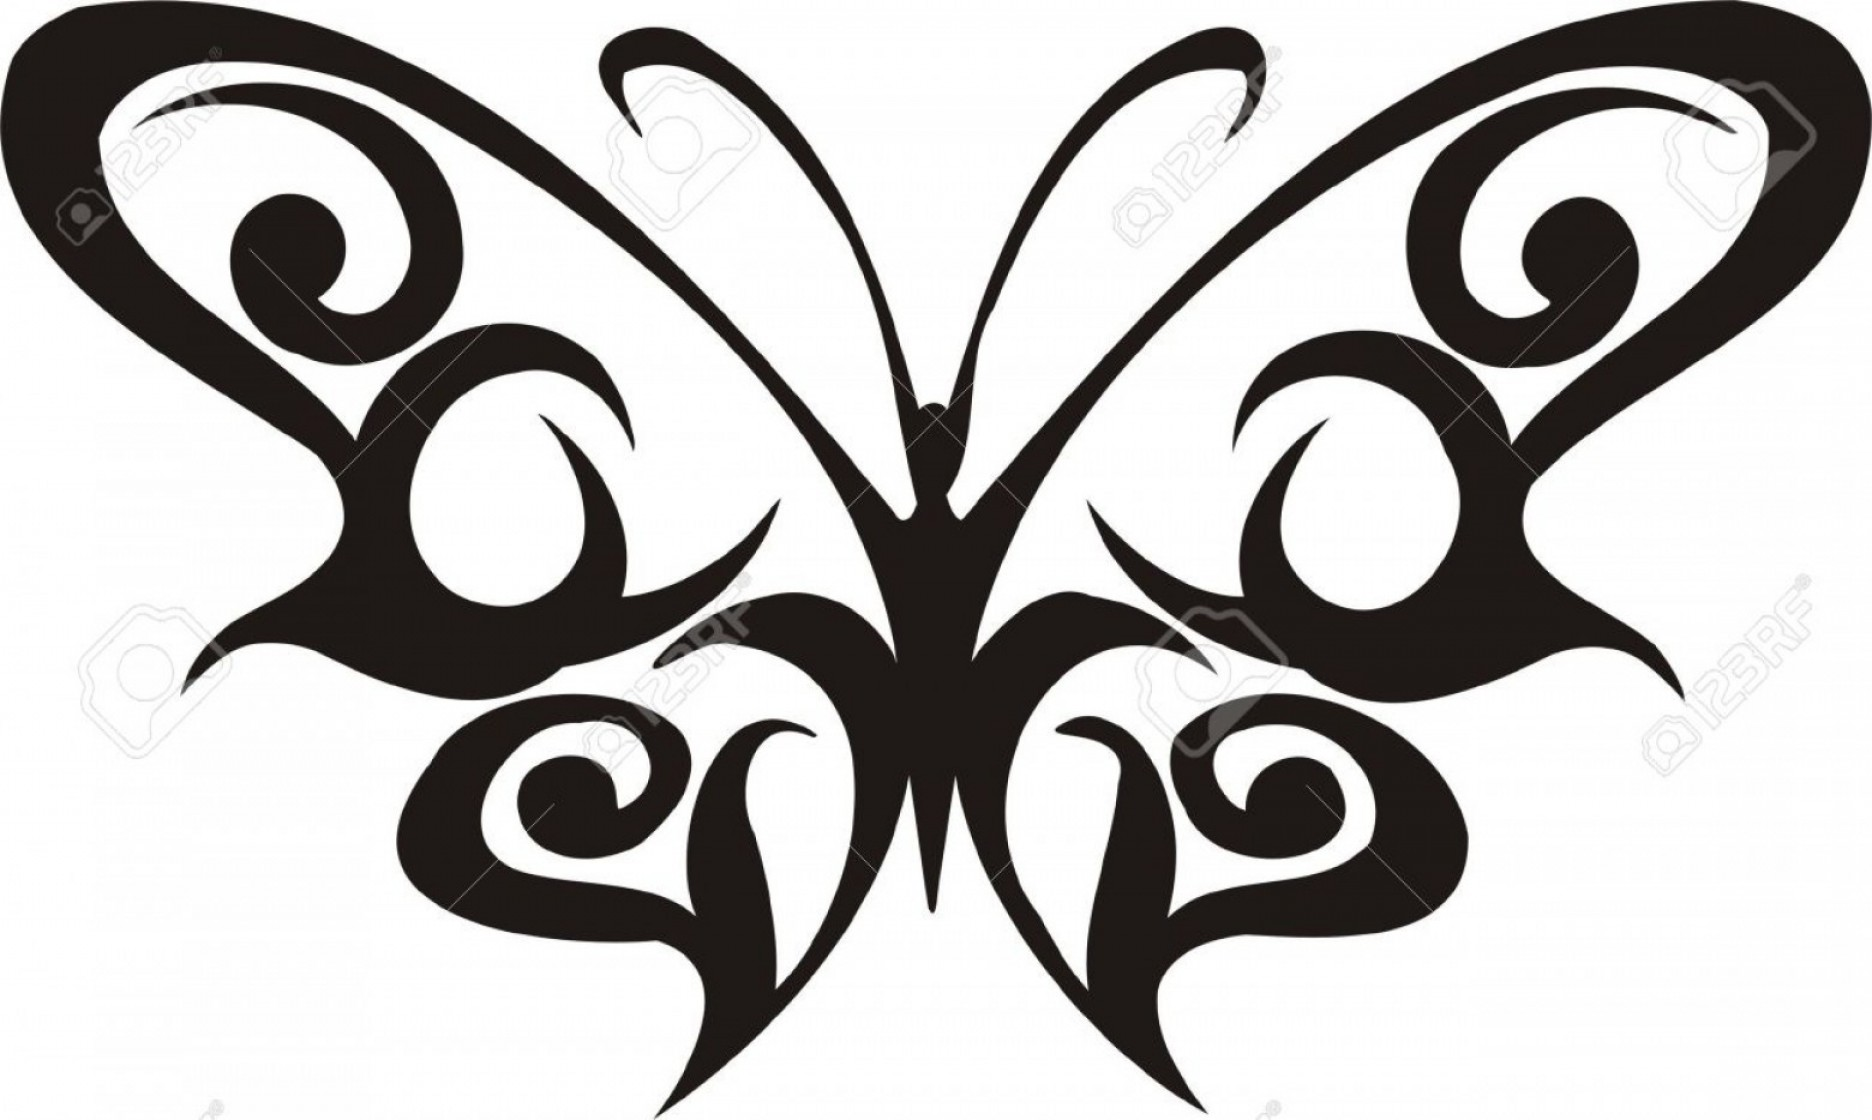 Butterly Vector: Phototribal Butterflies Vector Illustration Ready For Vinyl Cutting